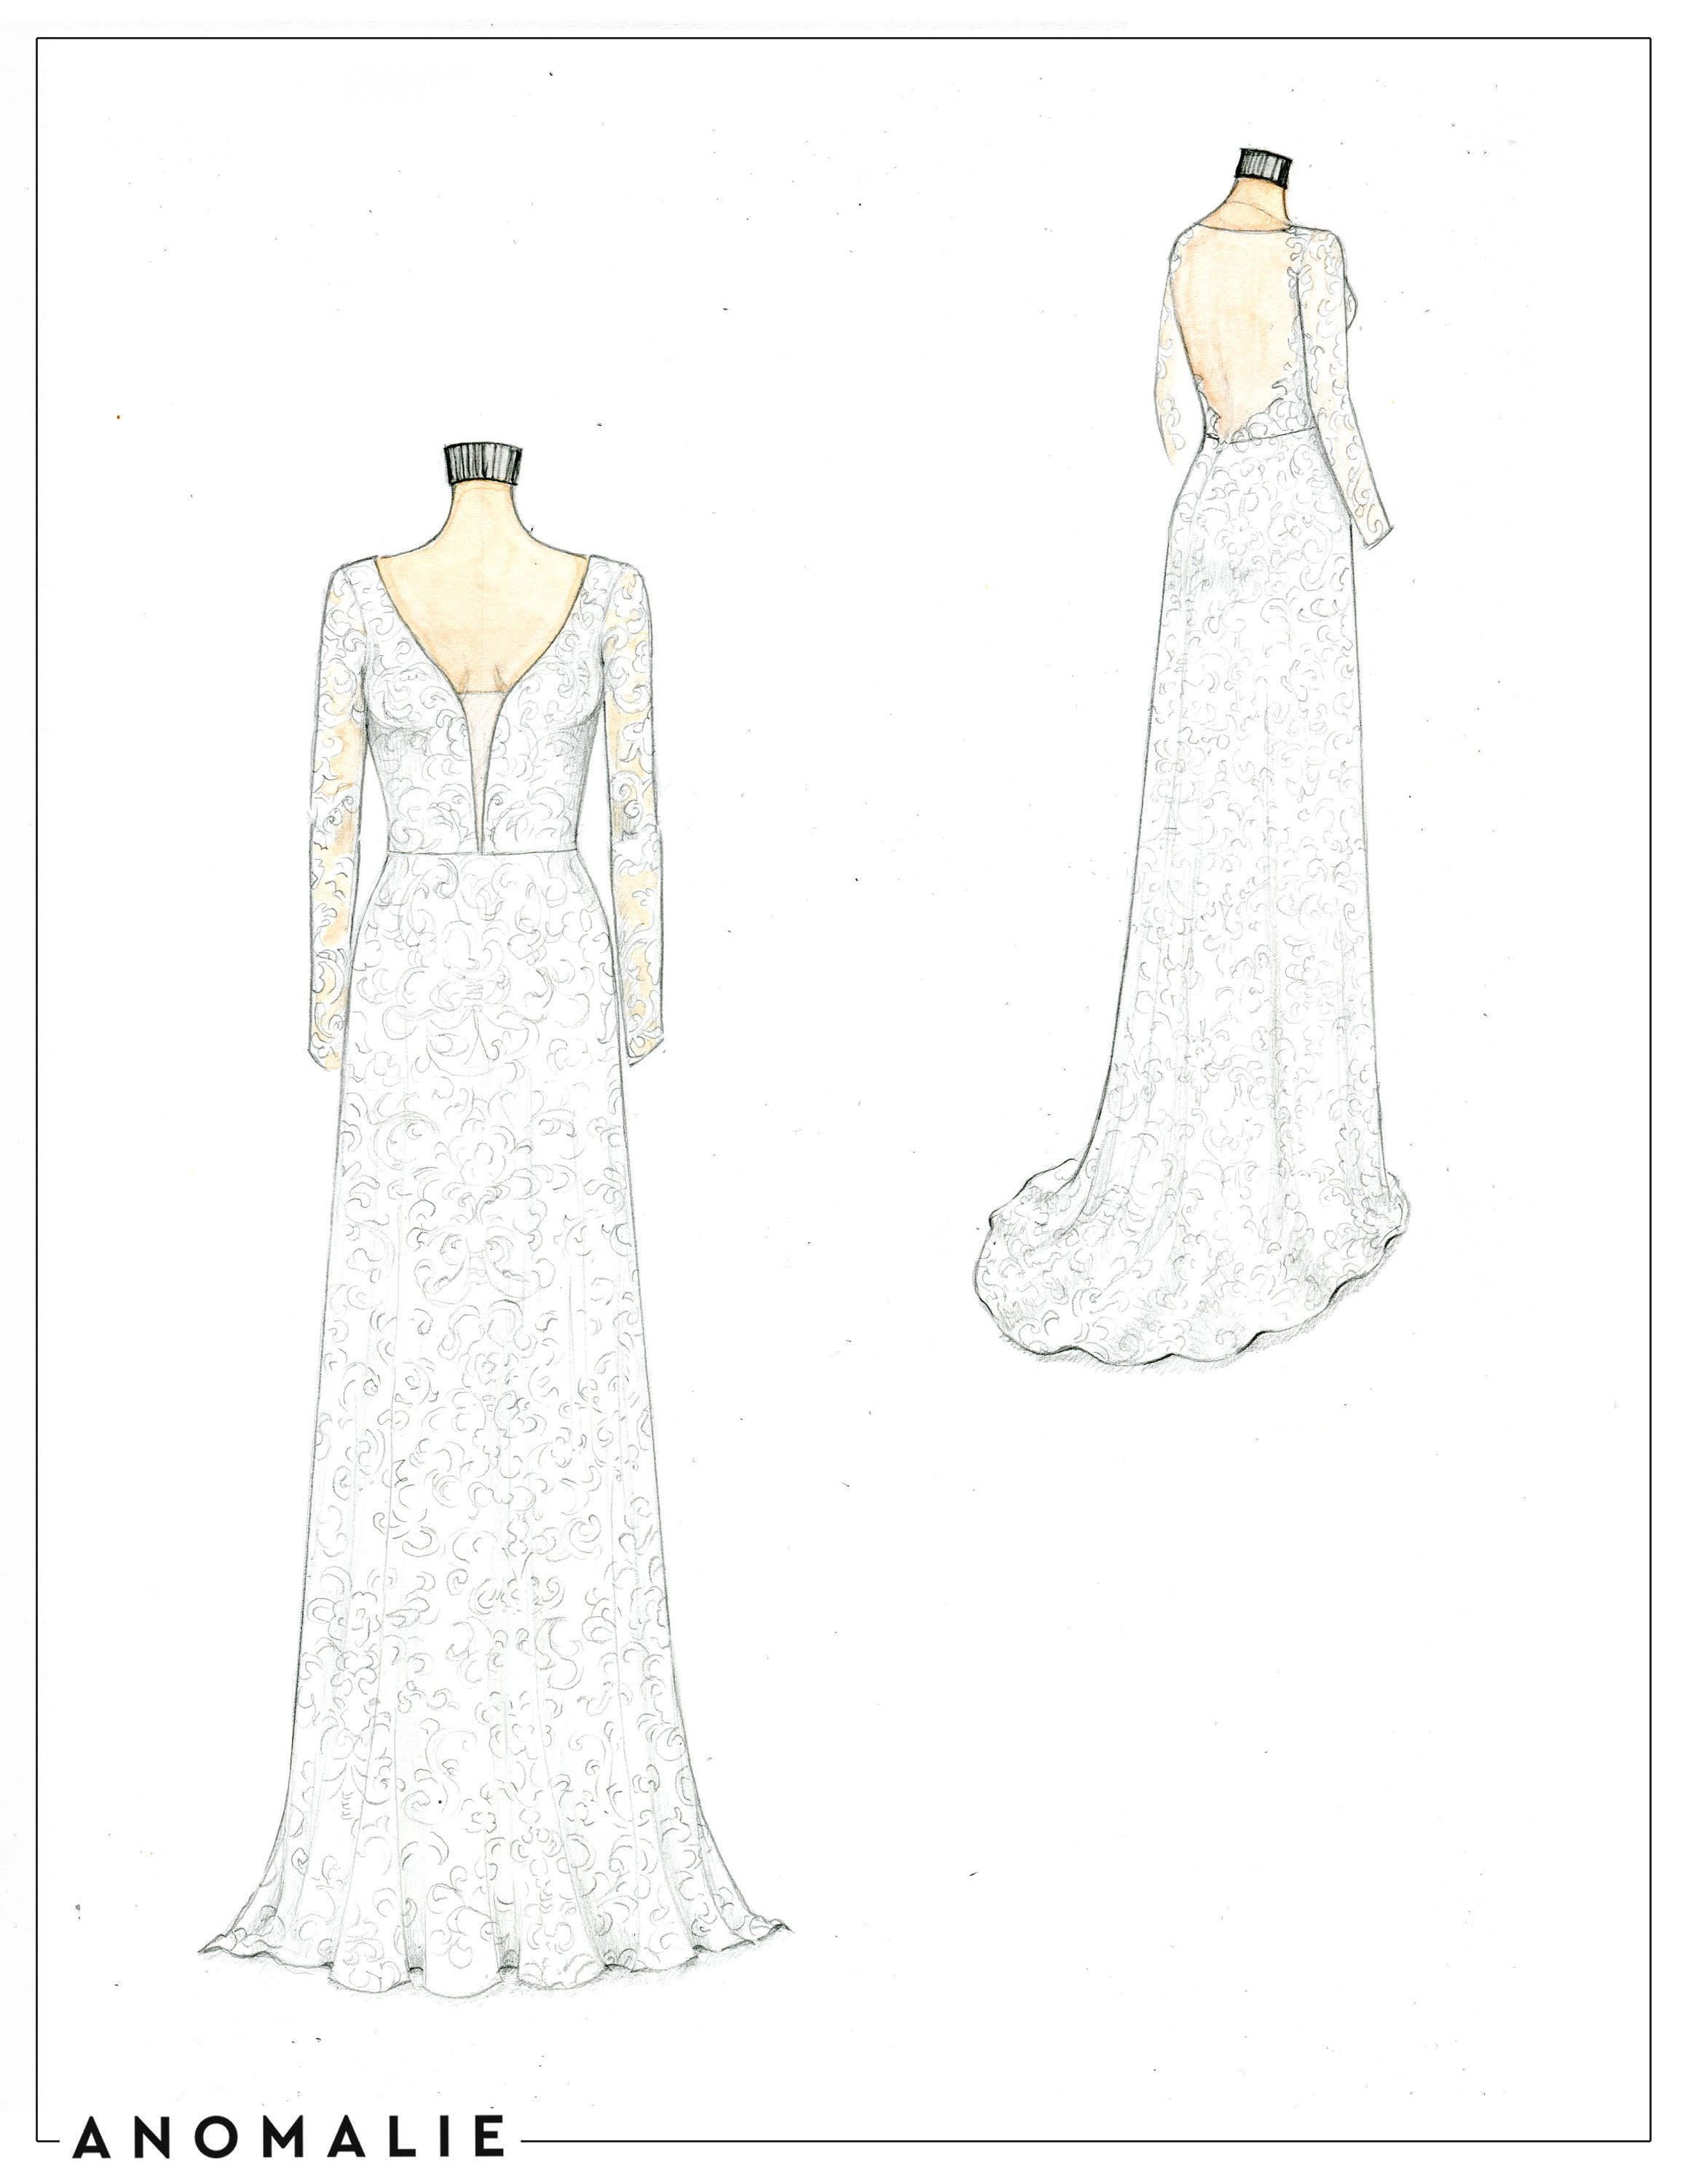 Anomalie Custom Sheath Wedding Dress Sketch With Court Train Long Sleeves And Sheer Illusio Wedding Dress Sketches Wedding Dress Illustrations Dress Sketches